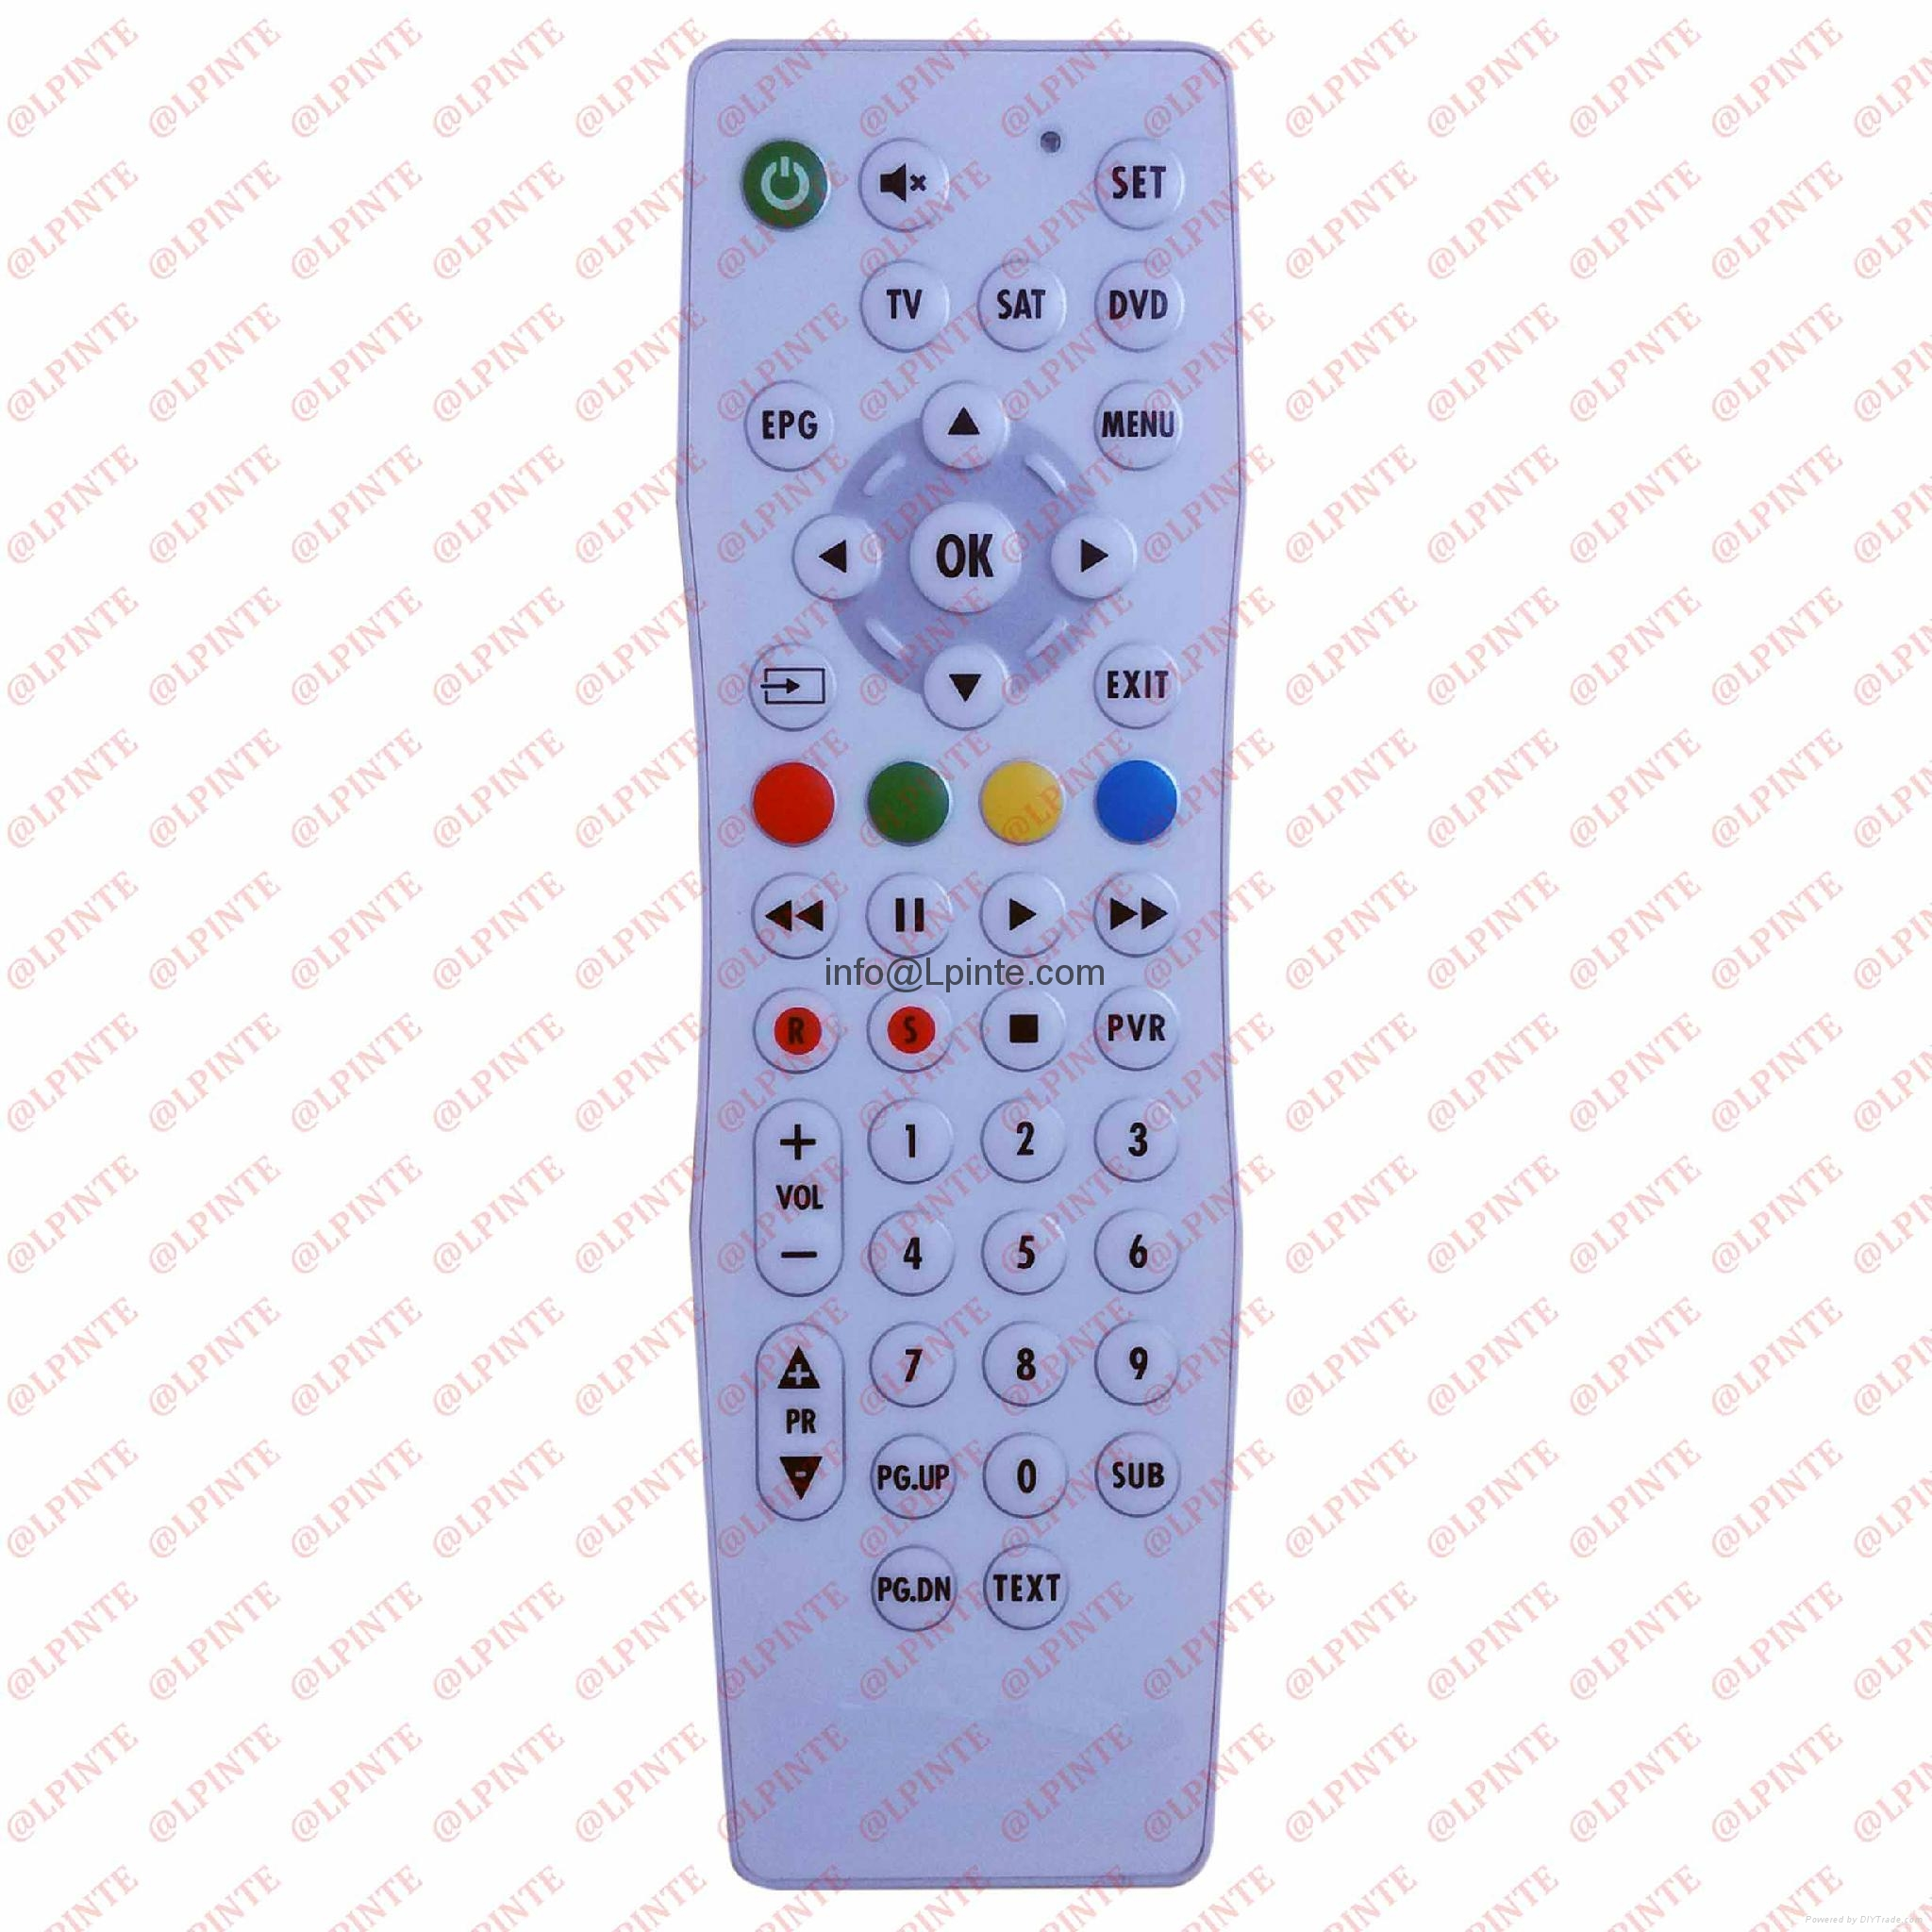 bathroom tv waterproof lcd tv remote control clean hospital wisdom learning